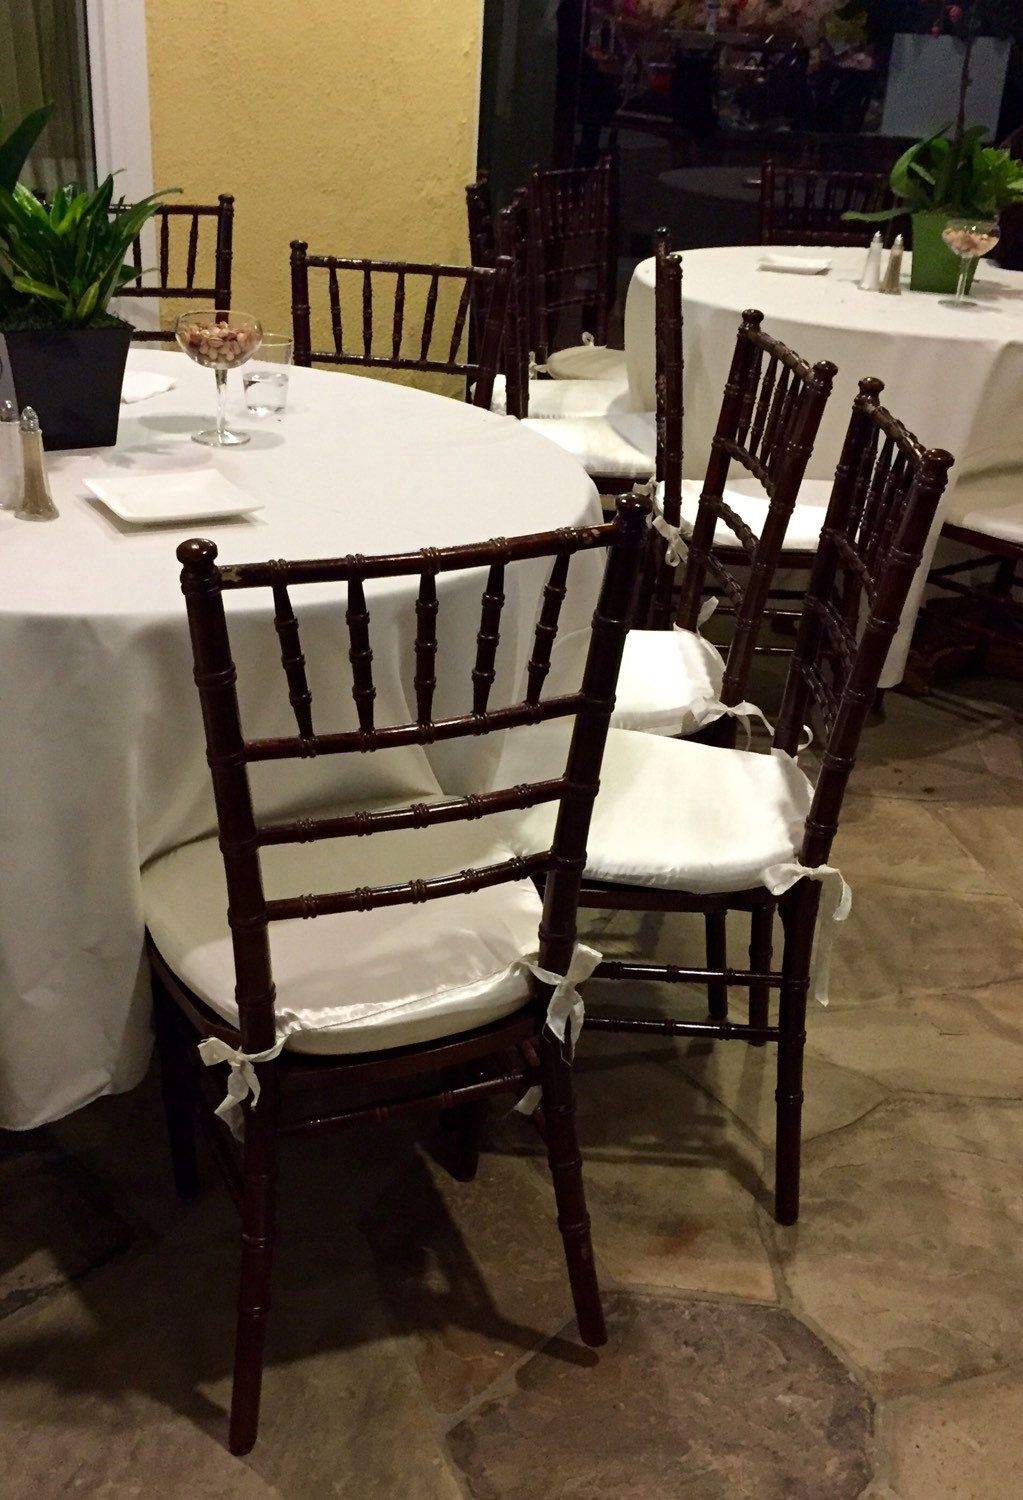 Chair Cushion Cover Chiavari Set Of 10 Or More Covers Wedding Decor Bridal Baby Shower White Ivory Black